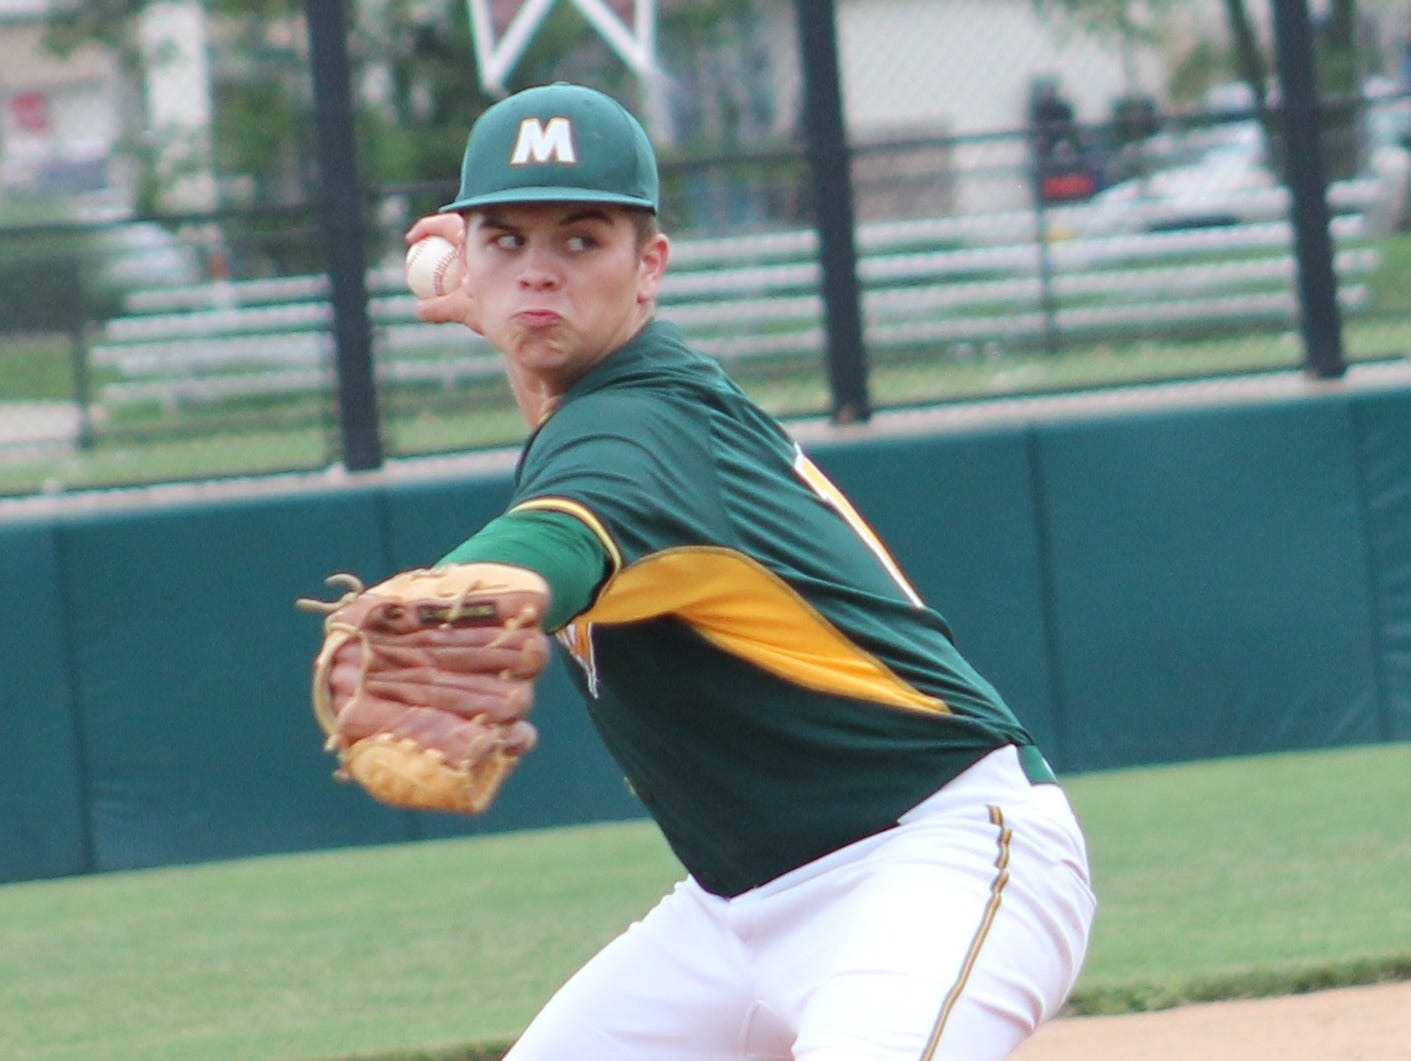 McNicholas' Sam Browning had a 5-1 record with a 1.06 ERA this season. McNicholas junior Sam Browning took a shutout into the 7th inning May 20 and eventually beat Wyoming 6-1 in a complete game tournament victory.